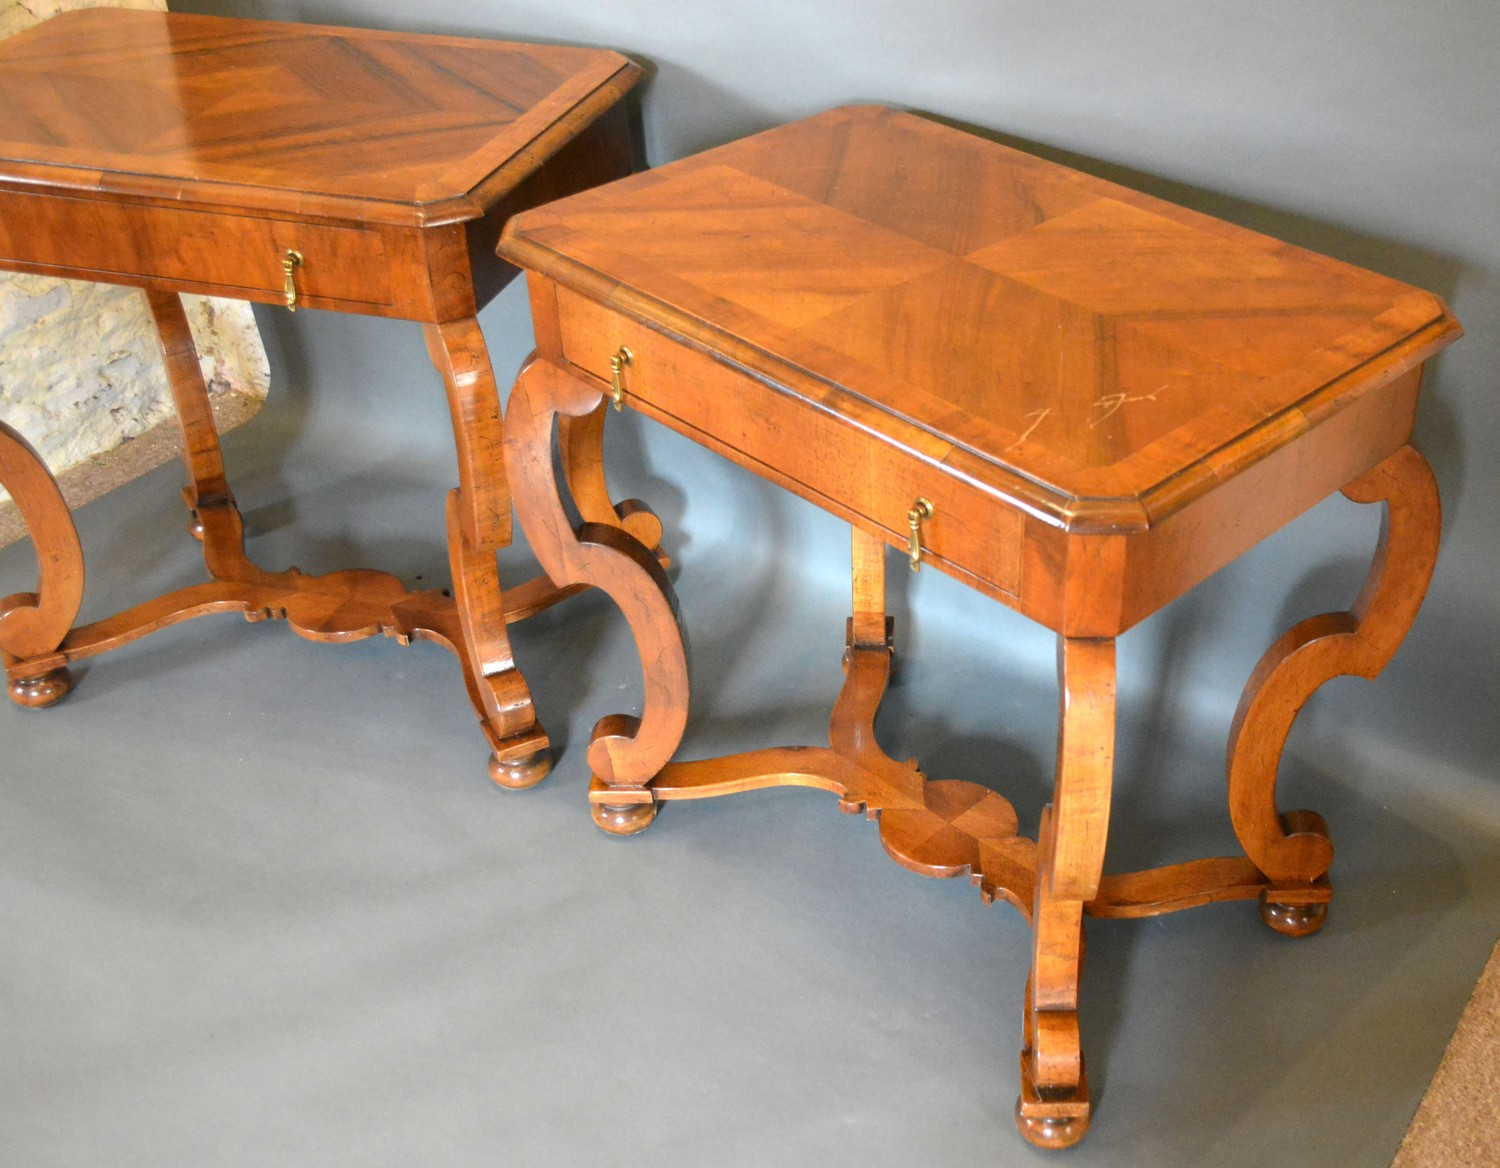 A Pair of 18th Century Style Walnut Side Tables, the moulded crossbanded tops above a frieze - Image 2 of 3